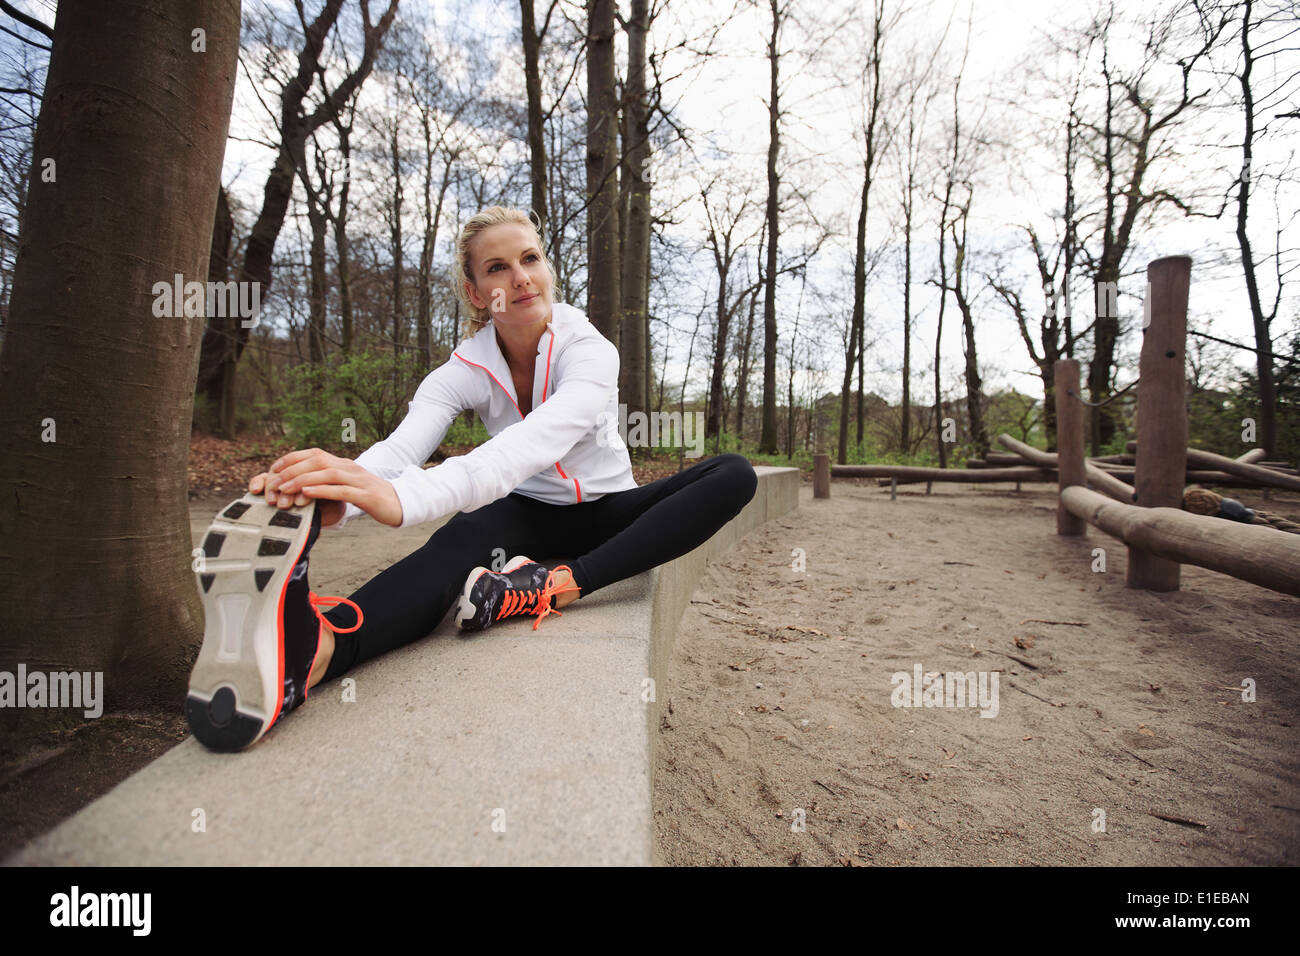 Woman doing stretching exercise in park. Caucasian female model exercising in nature. - Stock Image